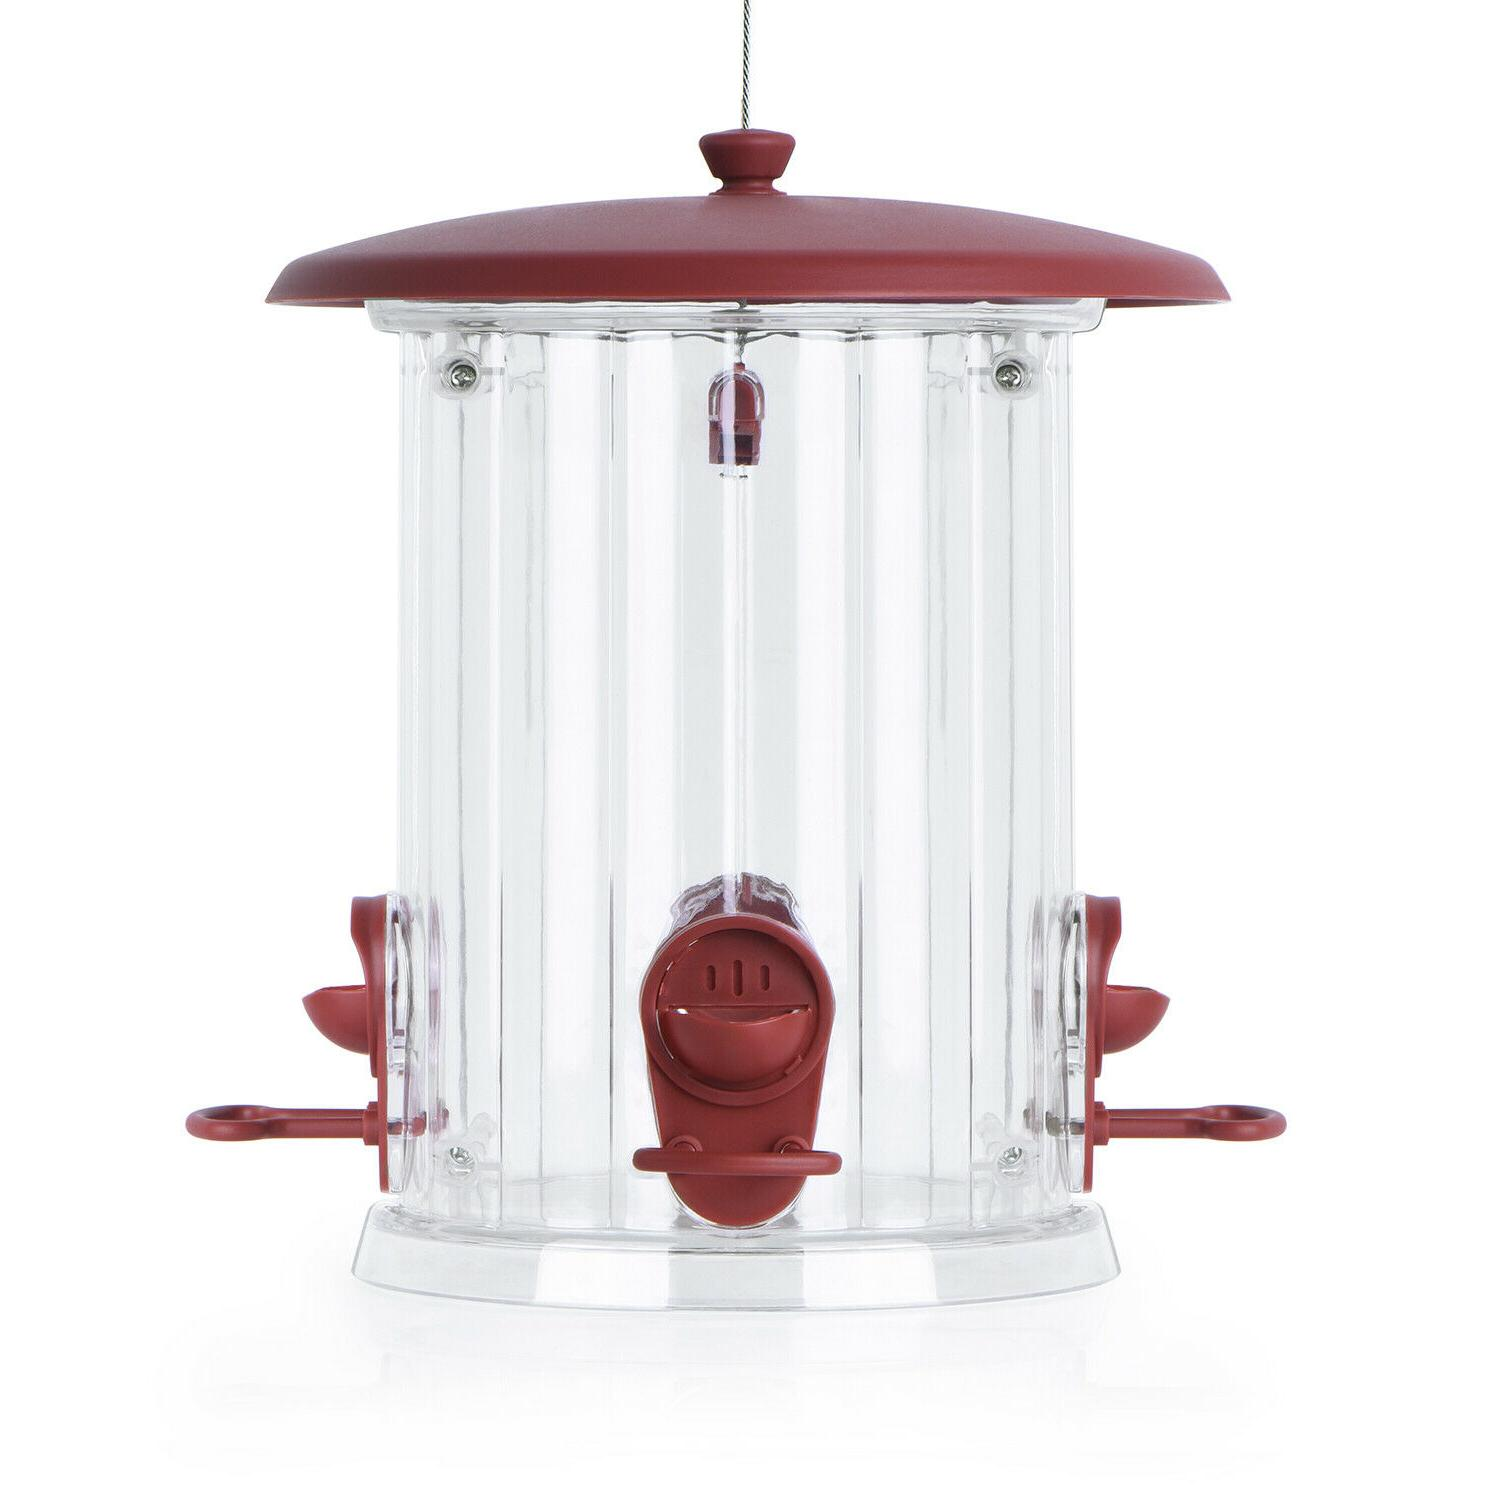 🐦BOLITE Feeder, Plastic Bird Feeders for Reddish